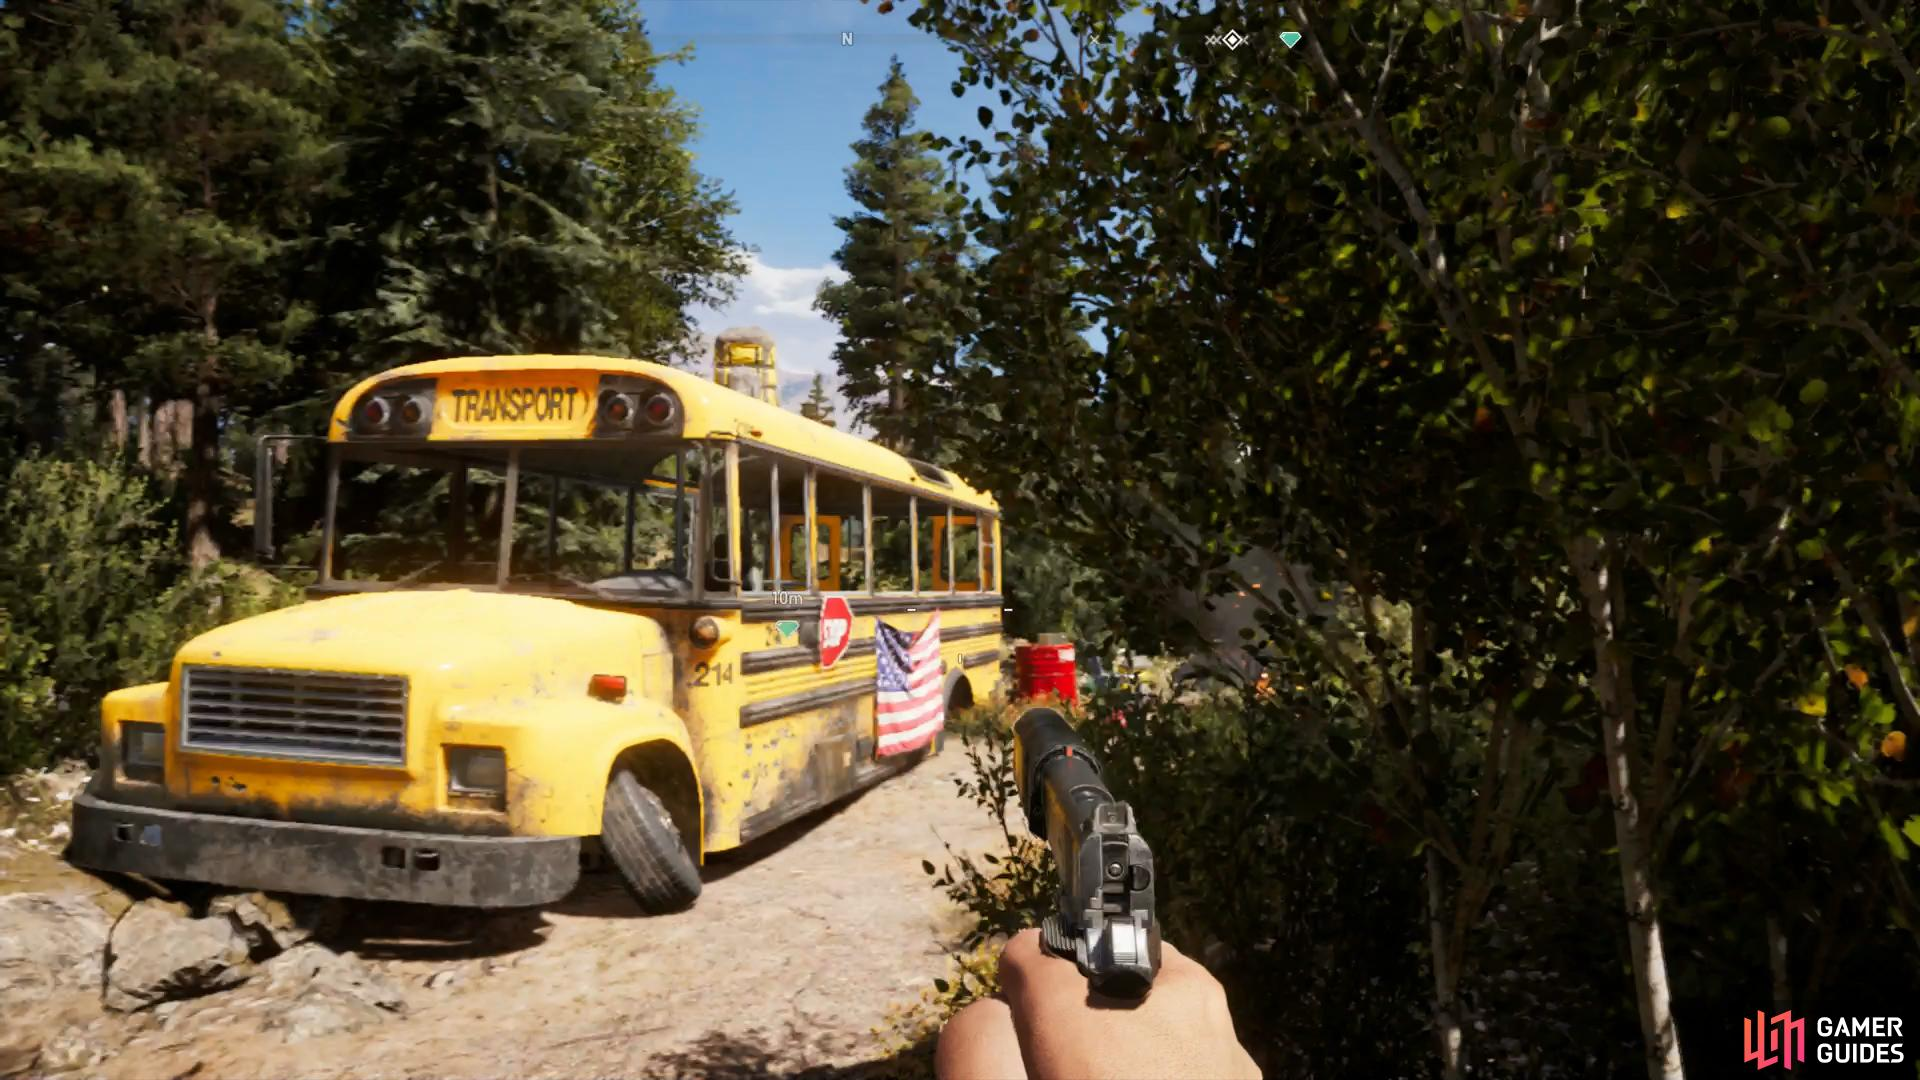 You'll find  the Hope County Jail Bus west of Fall's End